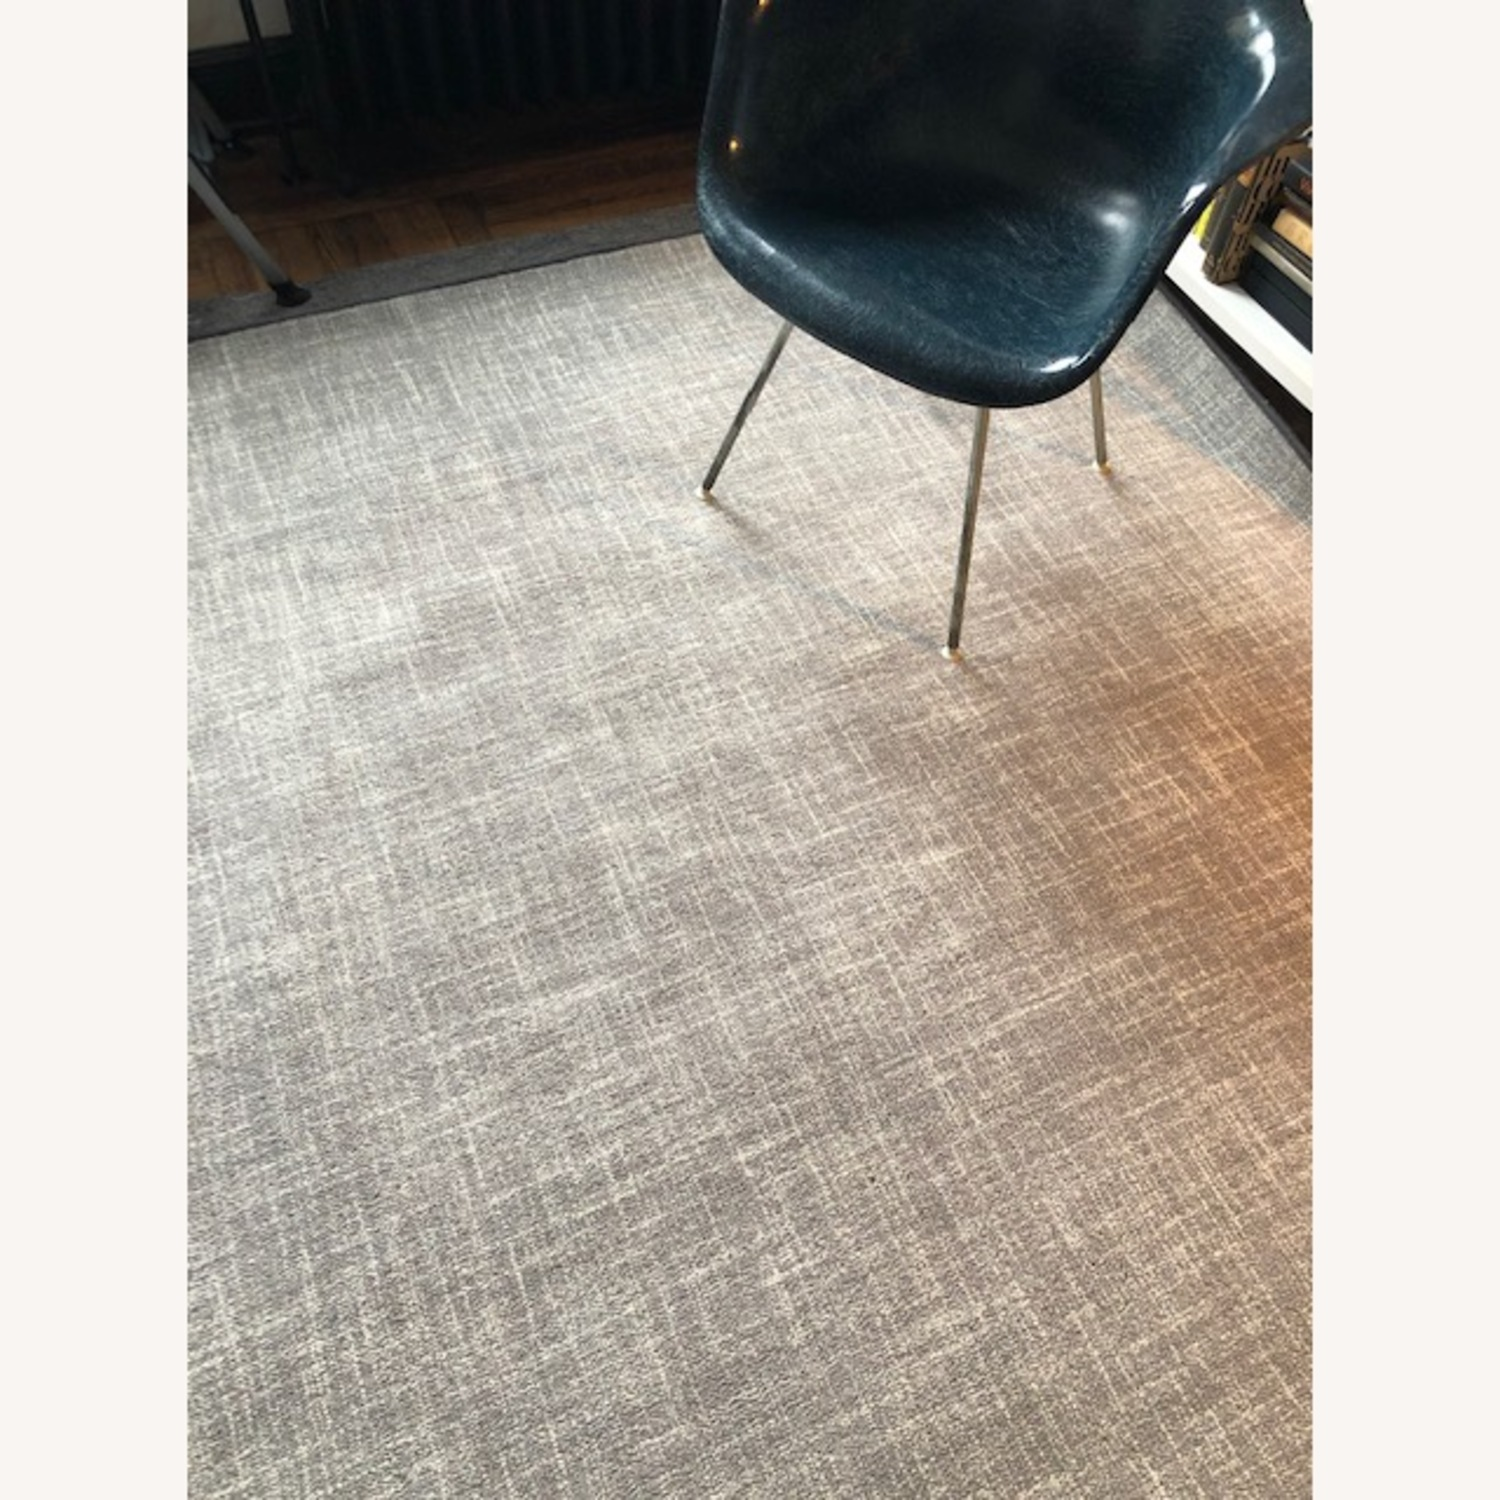 Wool Carpet 10' x 15' from ABC